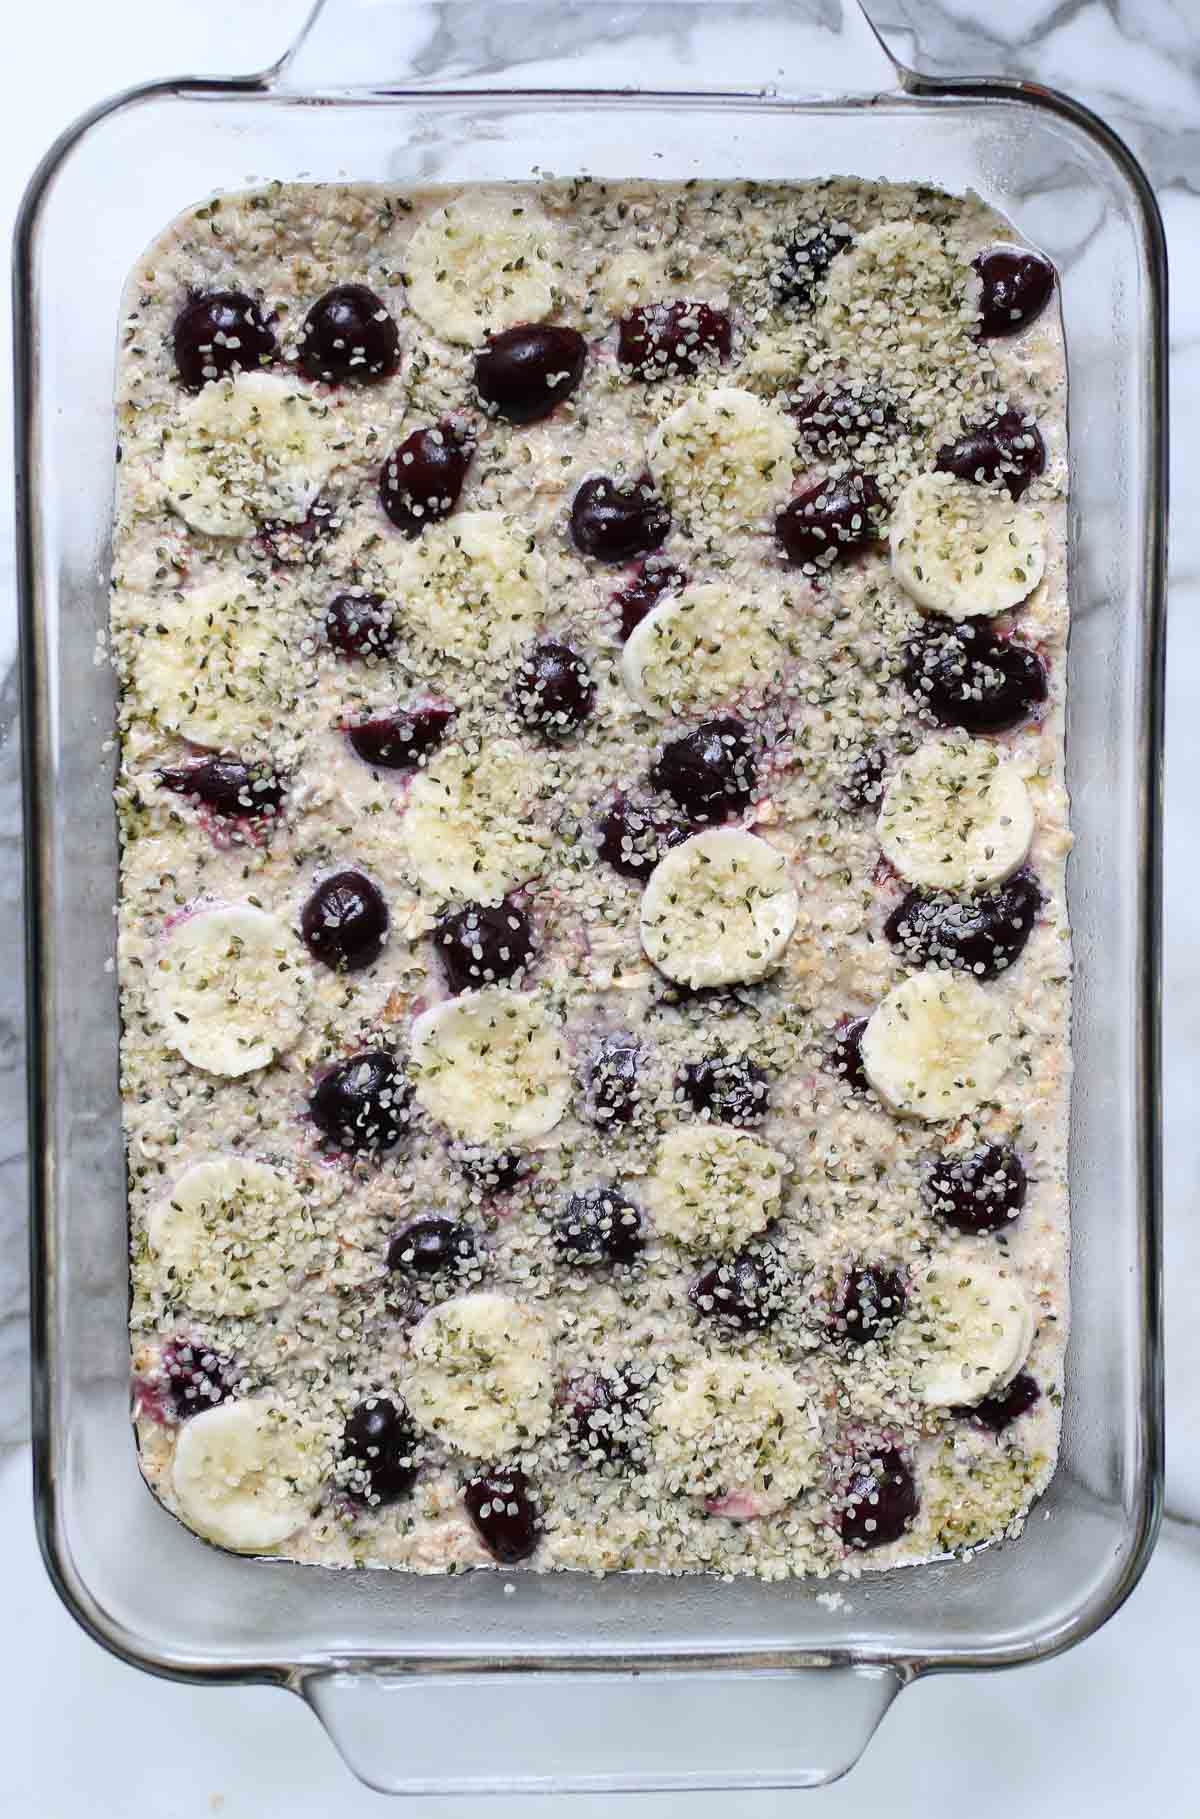 Baked oatmeal mixture added to a baking pan and topped with bananas, cherries, and hemp seeds.